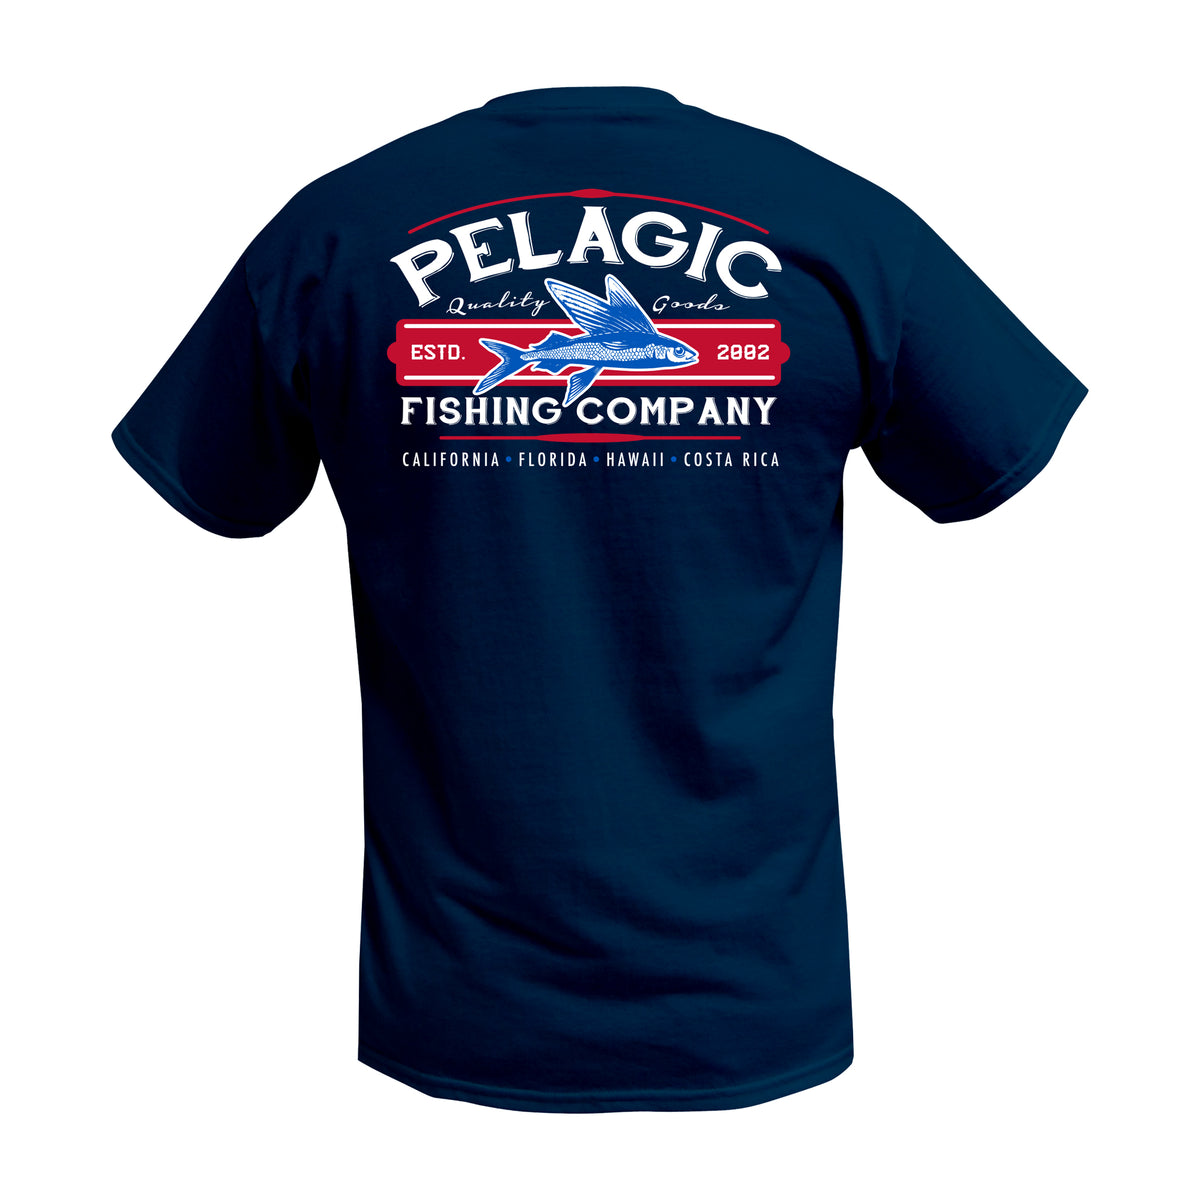 Fish Co. T-shirt Big Image - 1